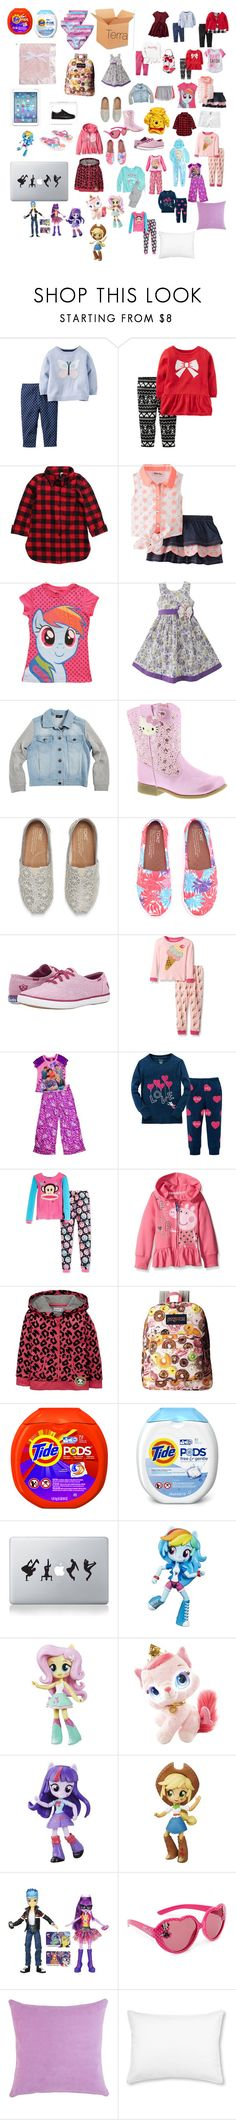 """Terra's"" by armanishaidixon on Polyvore featuring Carter's, NIKE, My Little Pony, Bardot Junior, Hello Kitty, Keds, Disney, Paul Frank, JanSport and Tide"